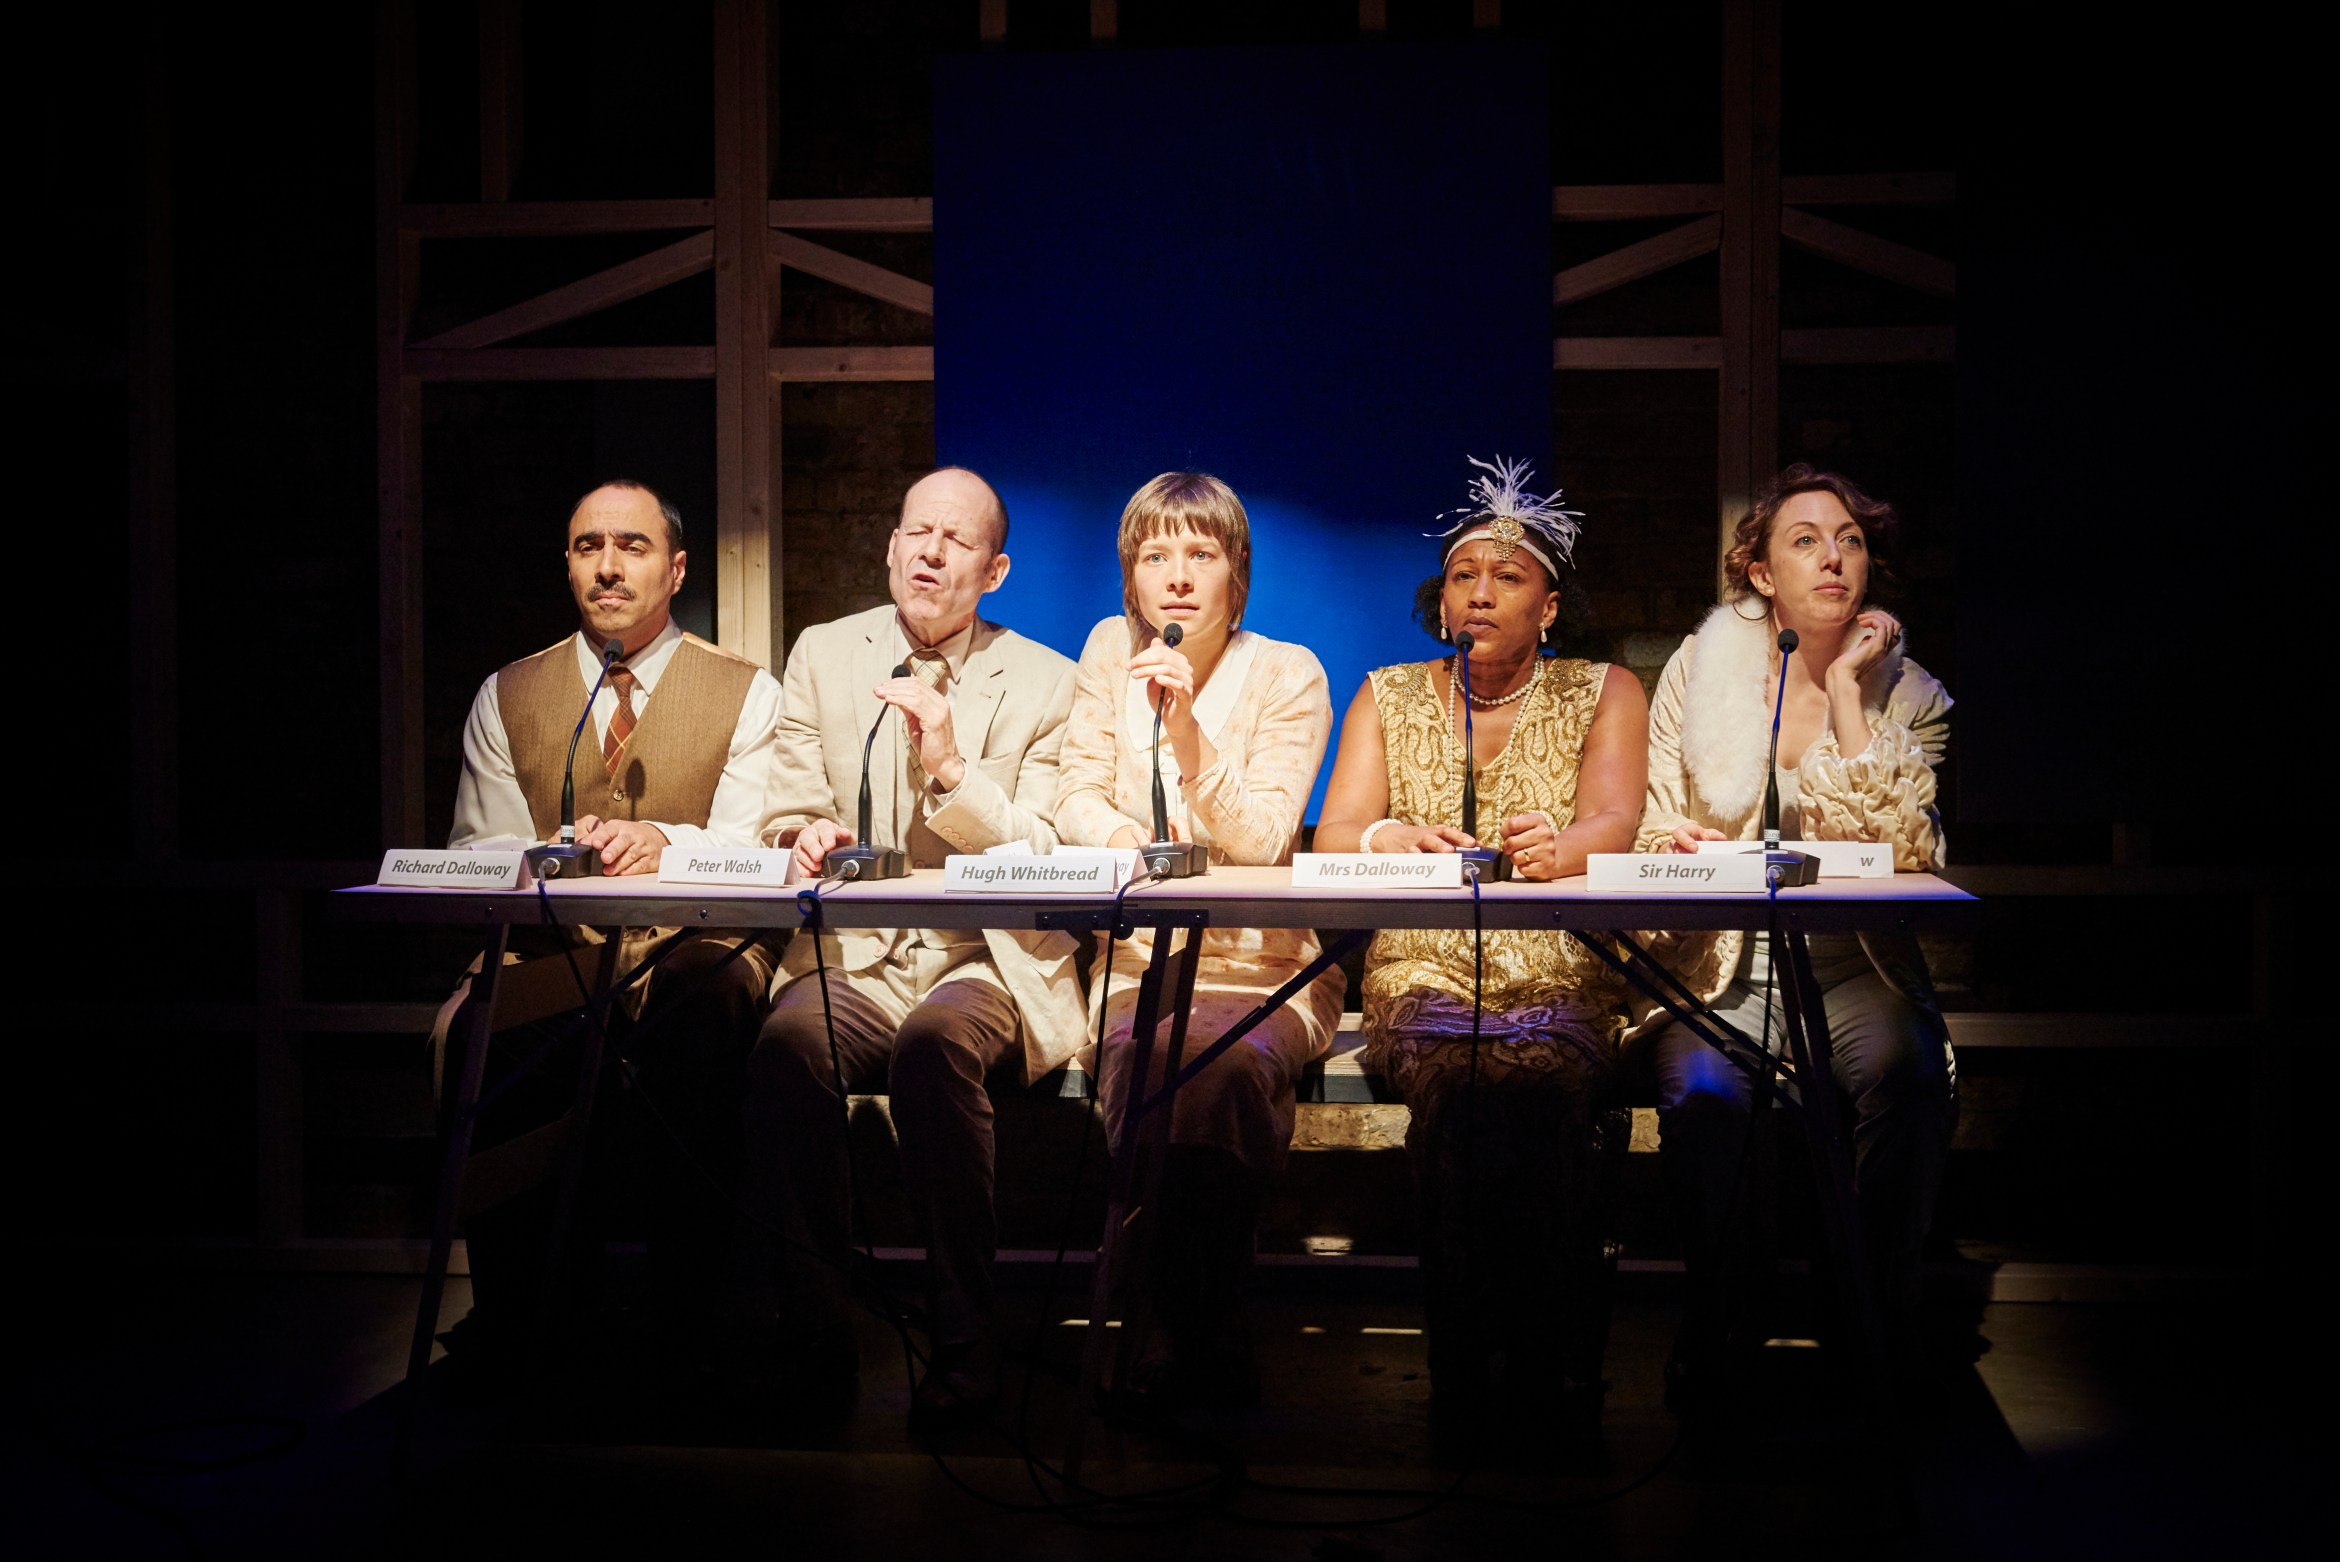 Sean Jackson (Peter), Guy Rhys (Septimus), Emma D'Arcy (Rezia), Claire Perkins (Clarissa) and Clare Lawrence Moody (Sally) (c) Ollie Grove.jpg